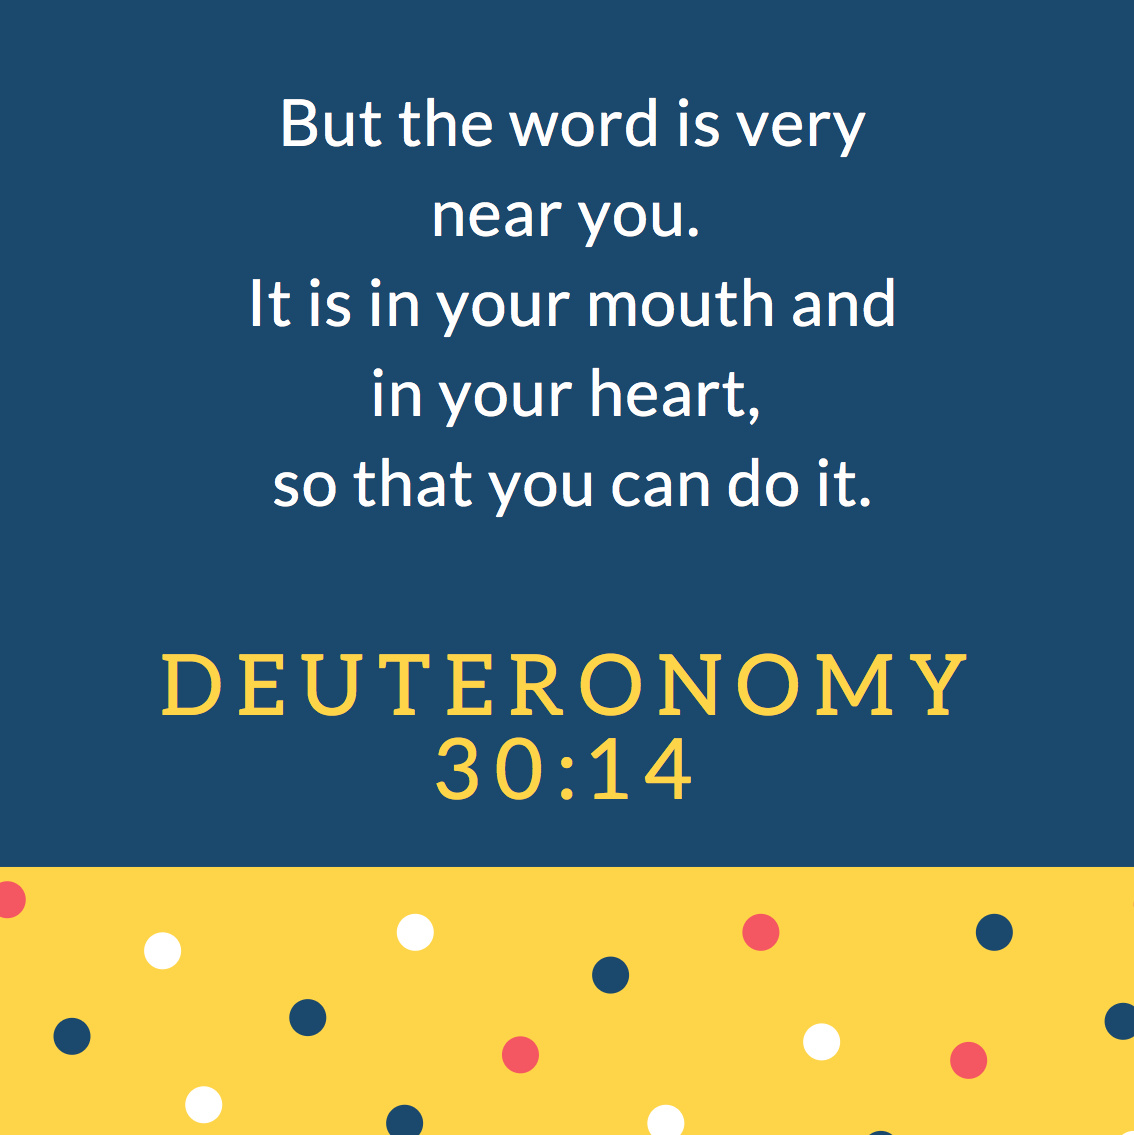 Look at First Words – Tips to Memorize Deuteronomy 30:14